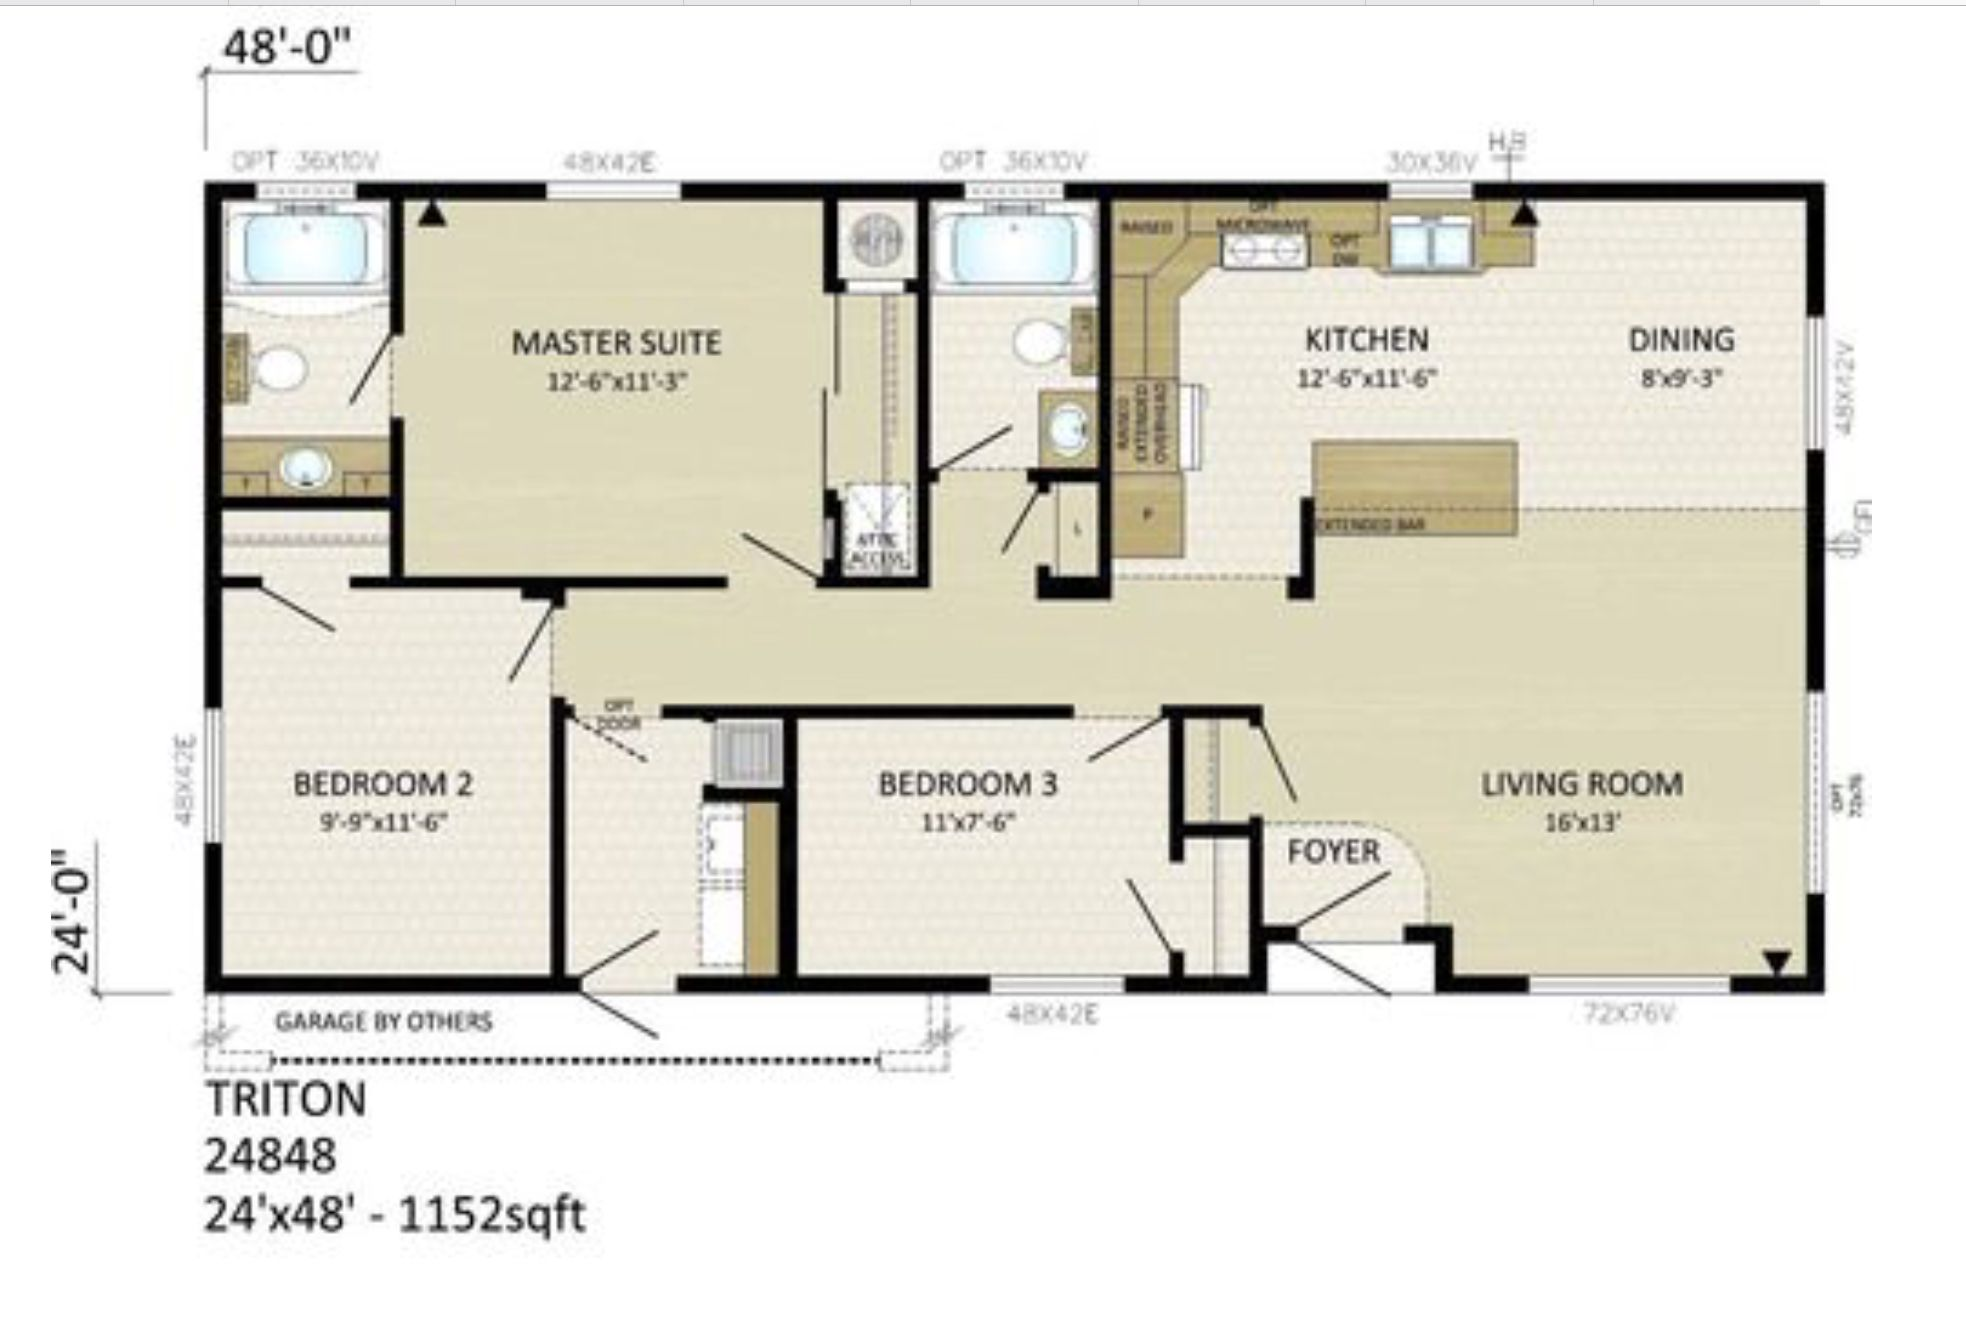 24 x 48 square foot floor plan for tiny ish house, 3 bed 2 ... Raised Ranch House Plans X on